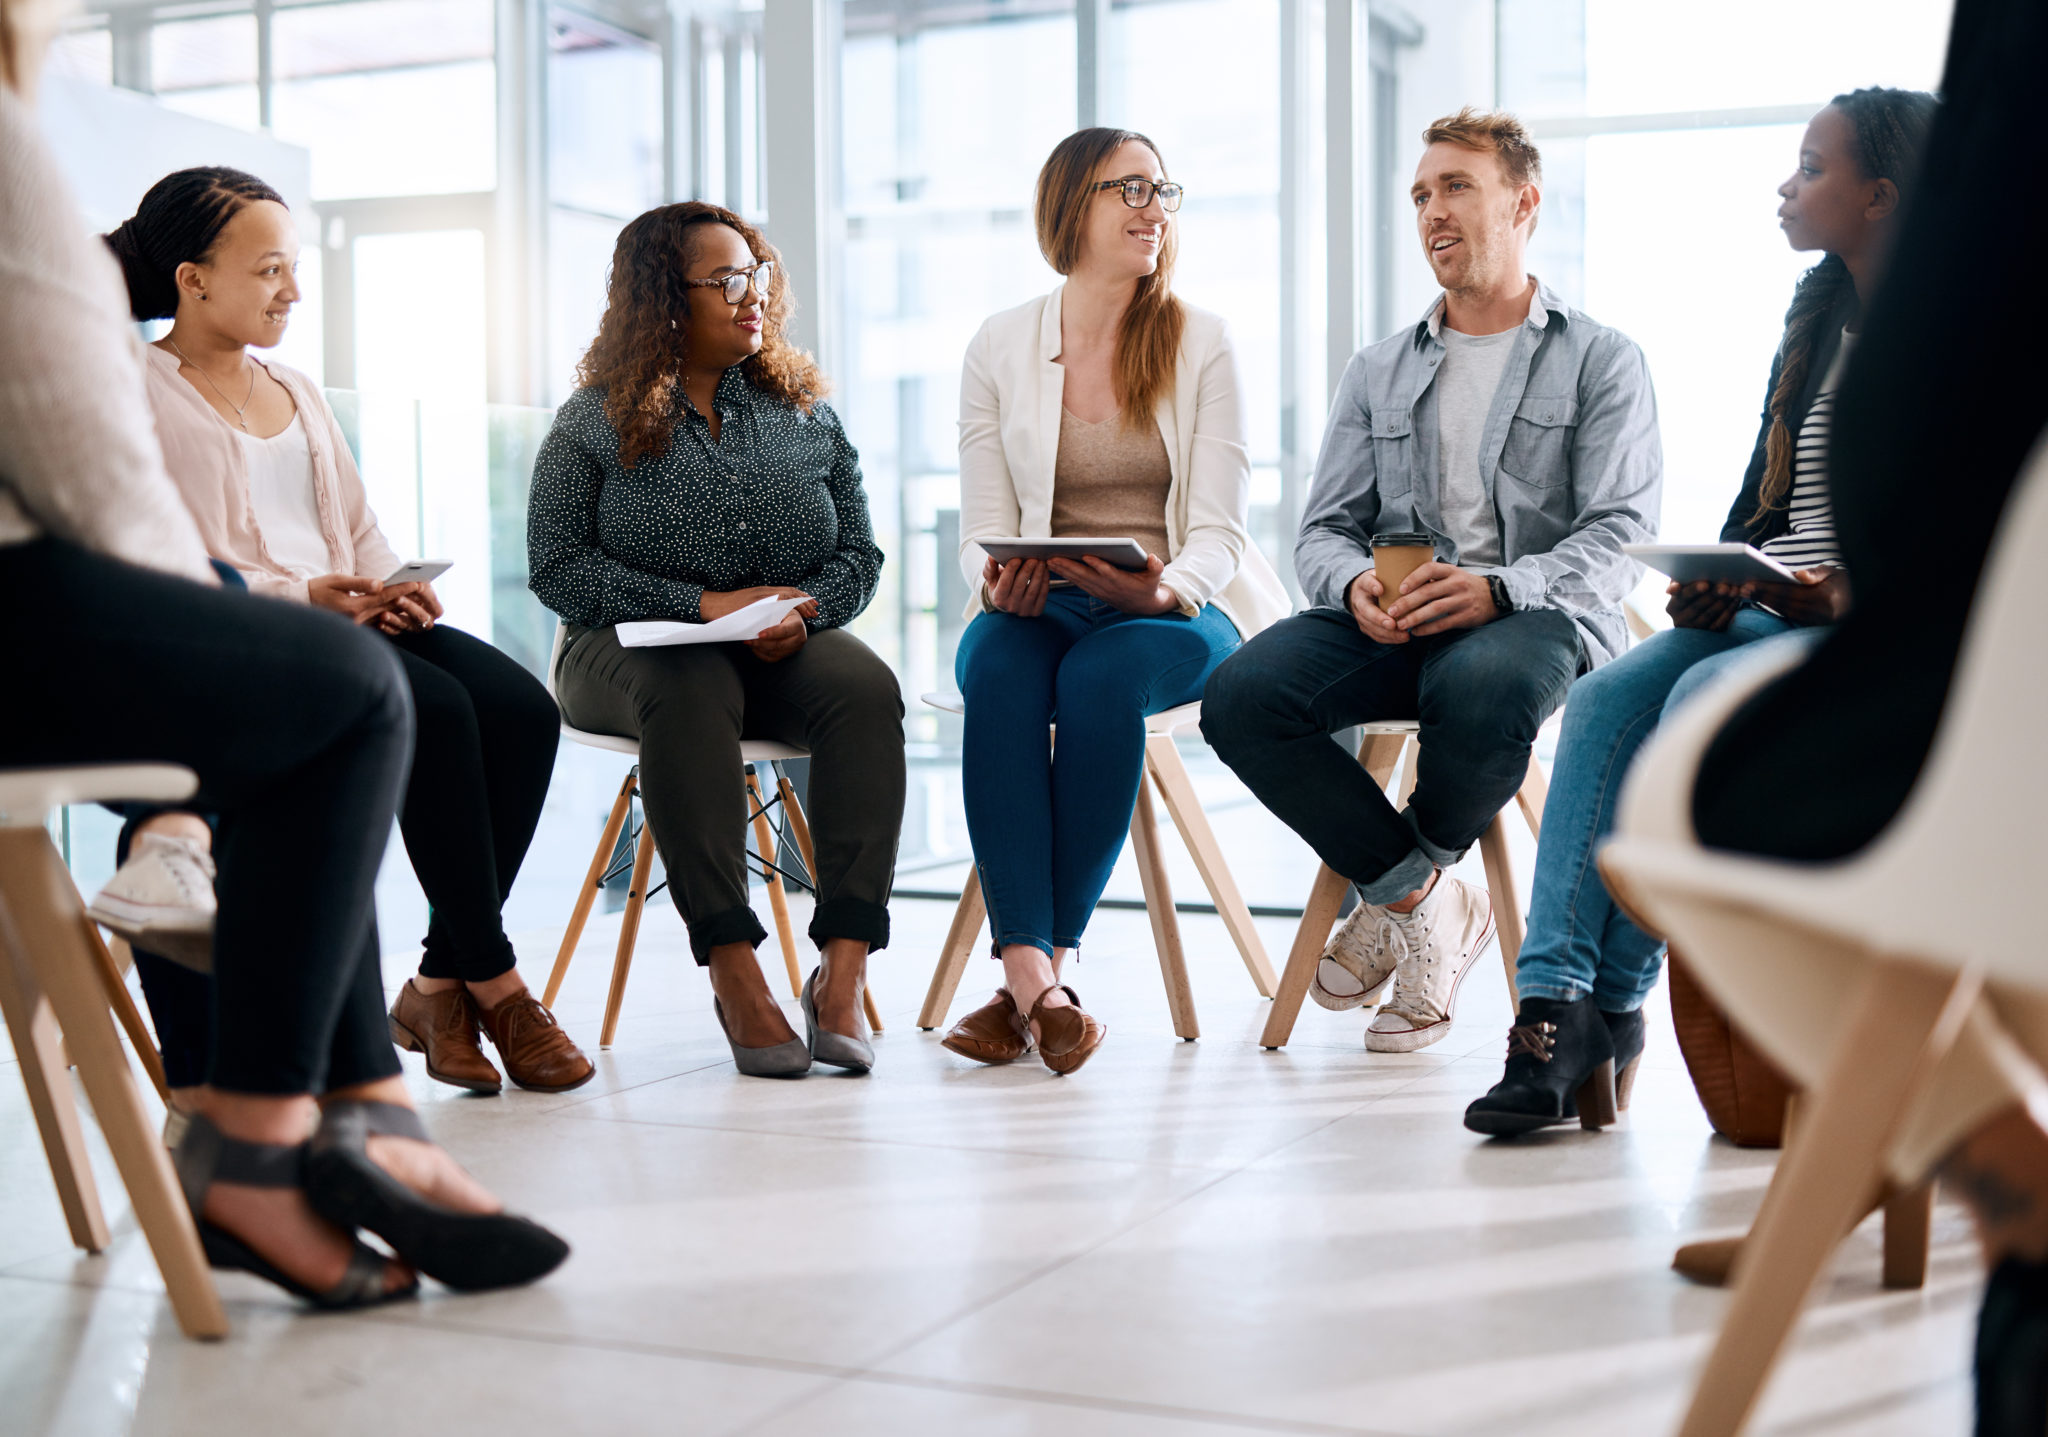 Shot of a group of people in a circle talking with eachother, they could be in a support circle or they could be having a meeting